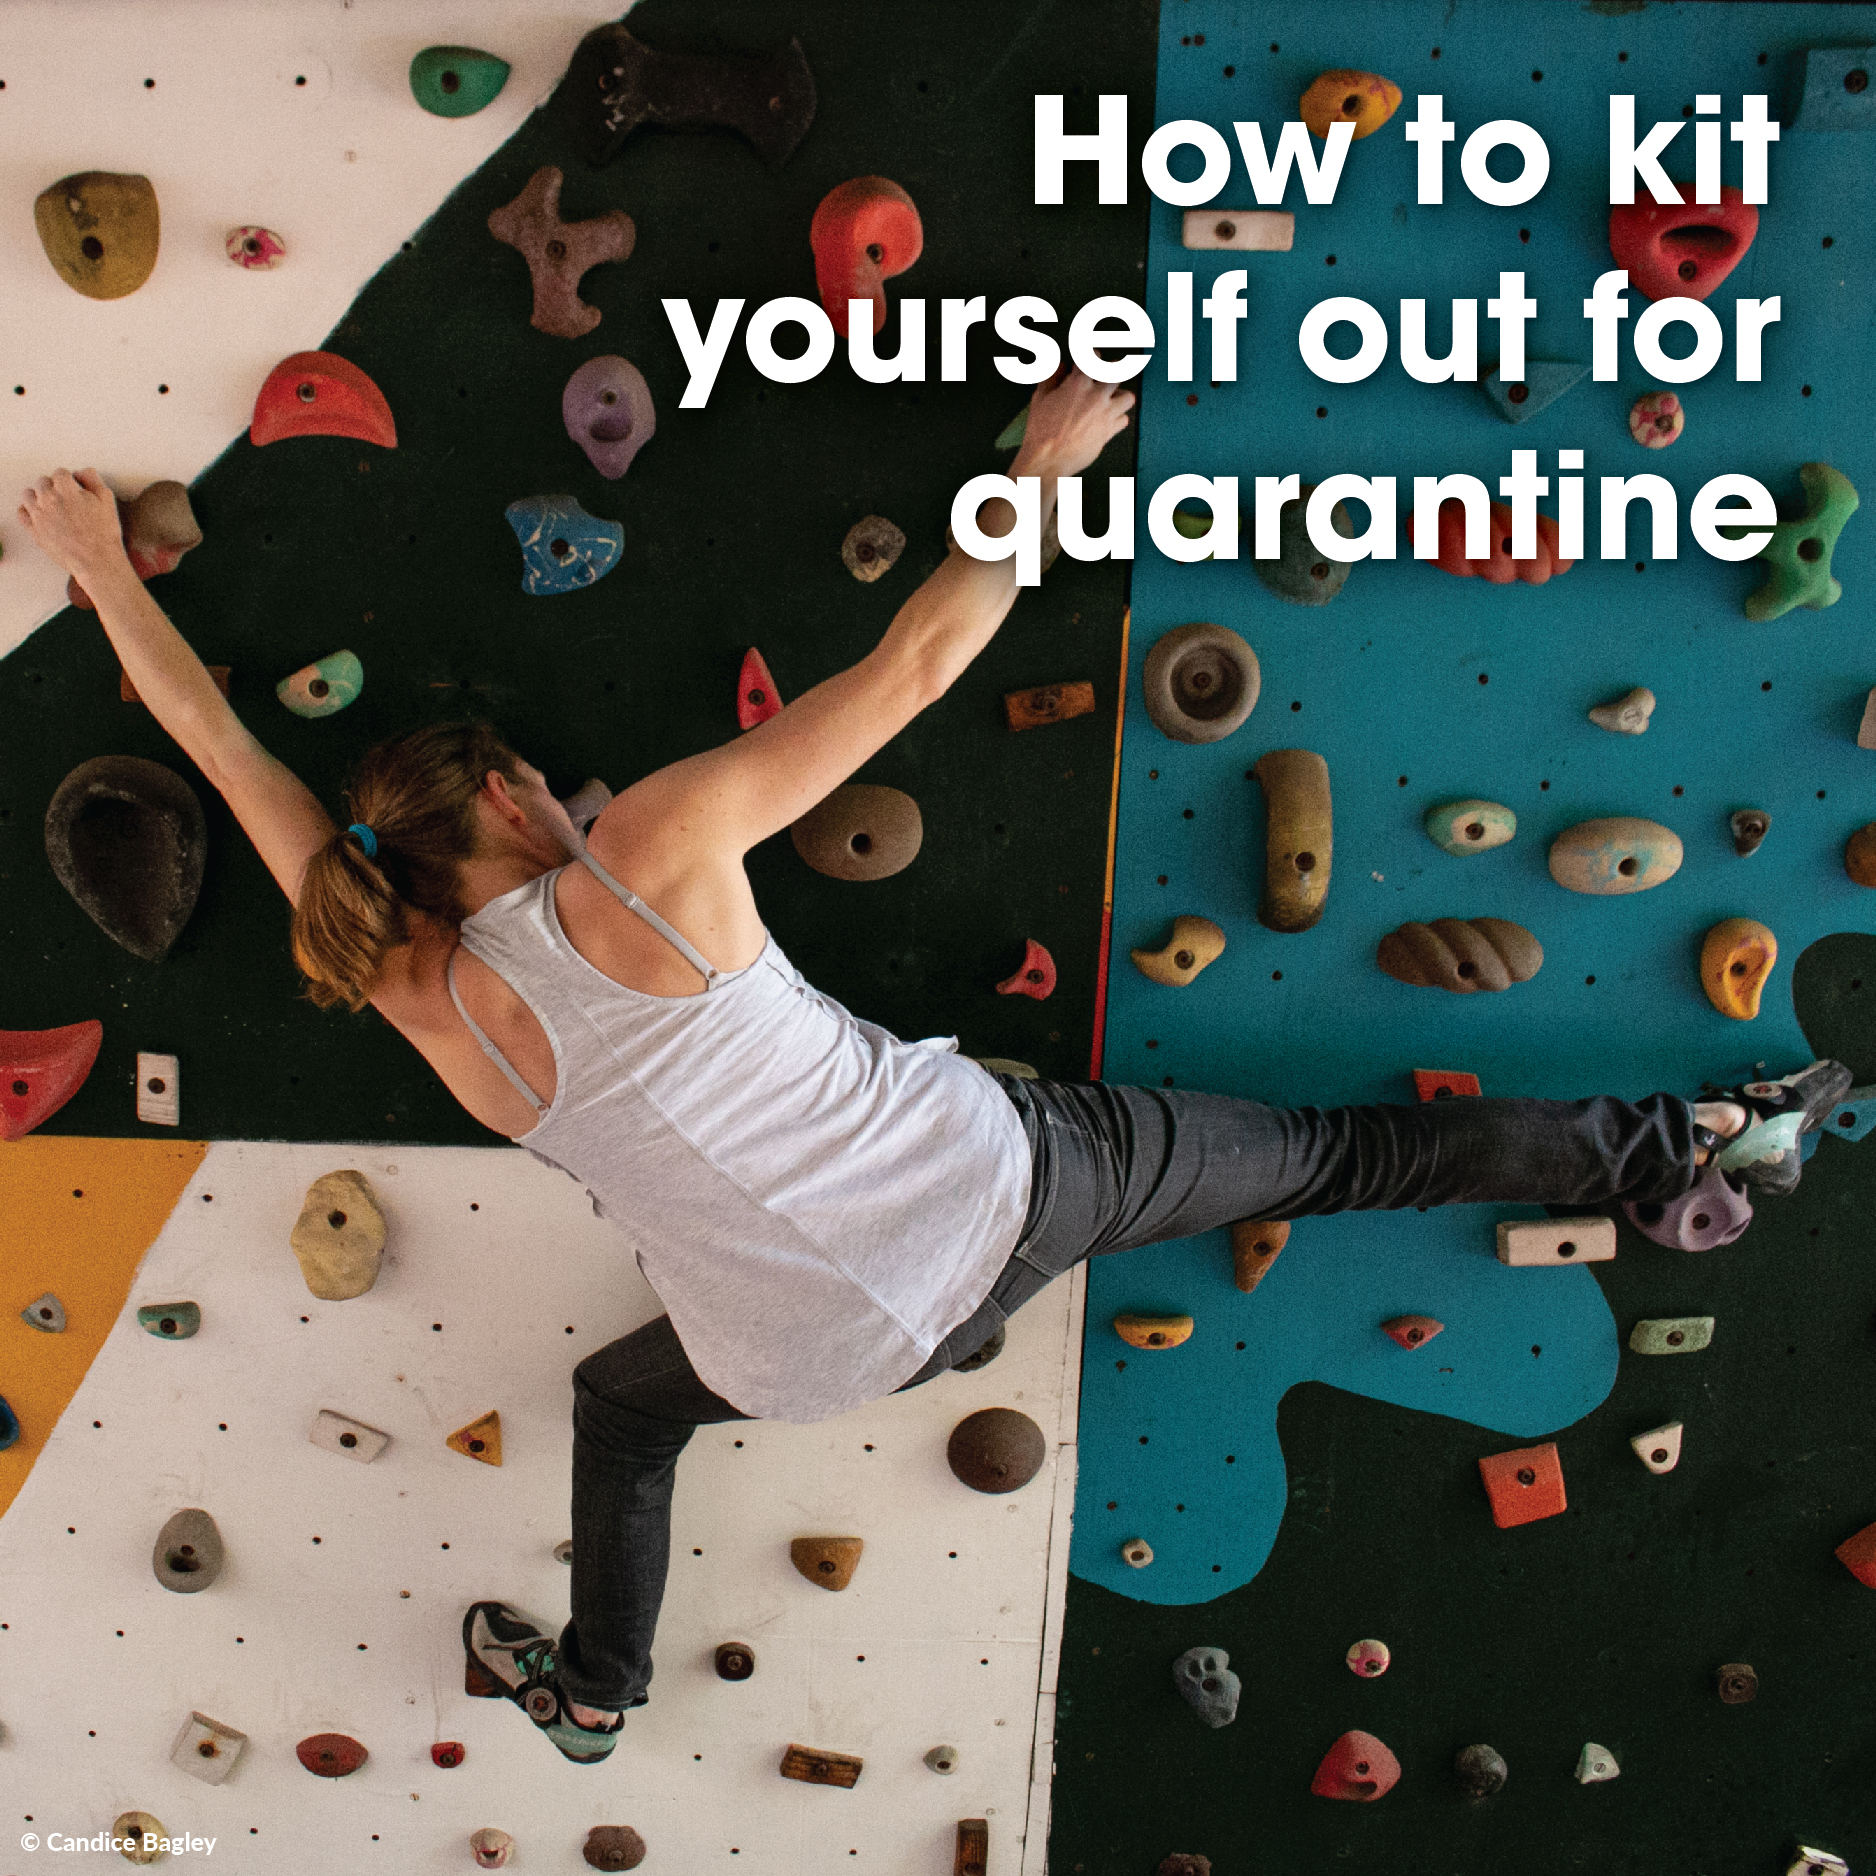 How to kit yourself out for quarantine